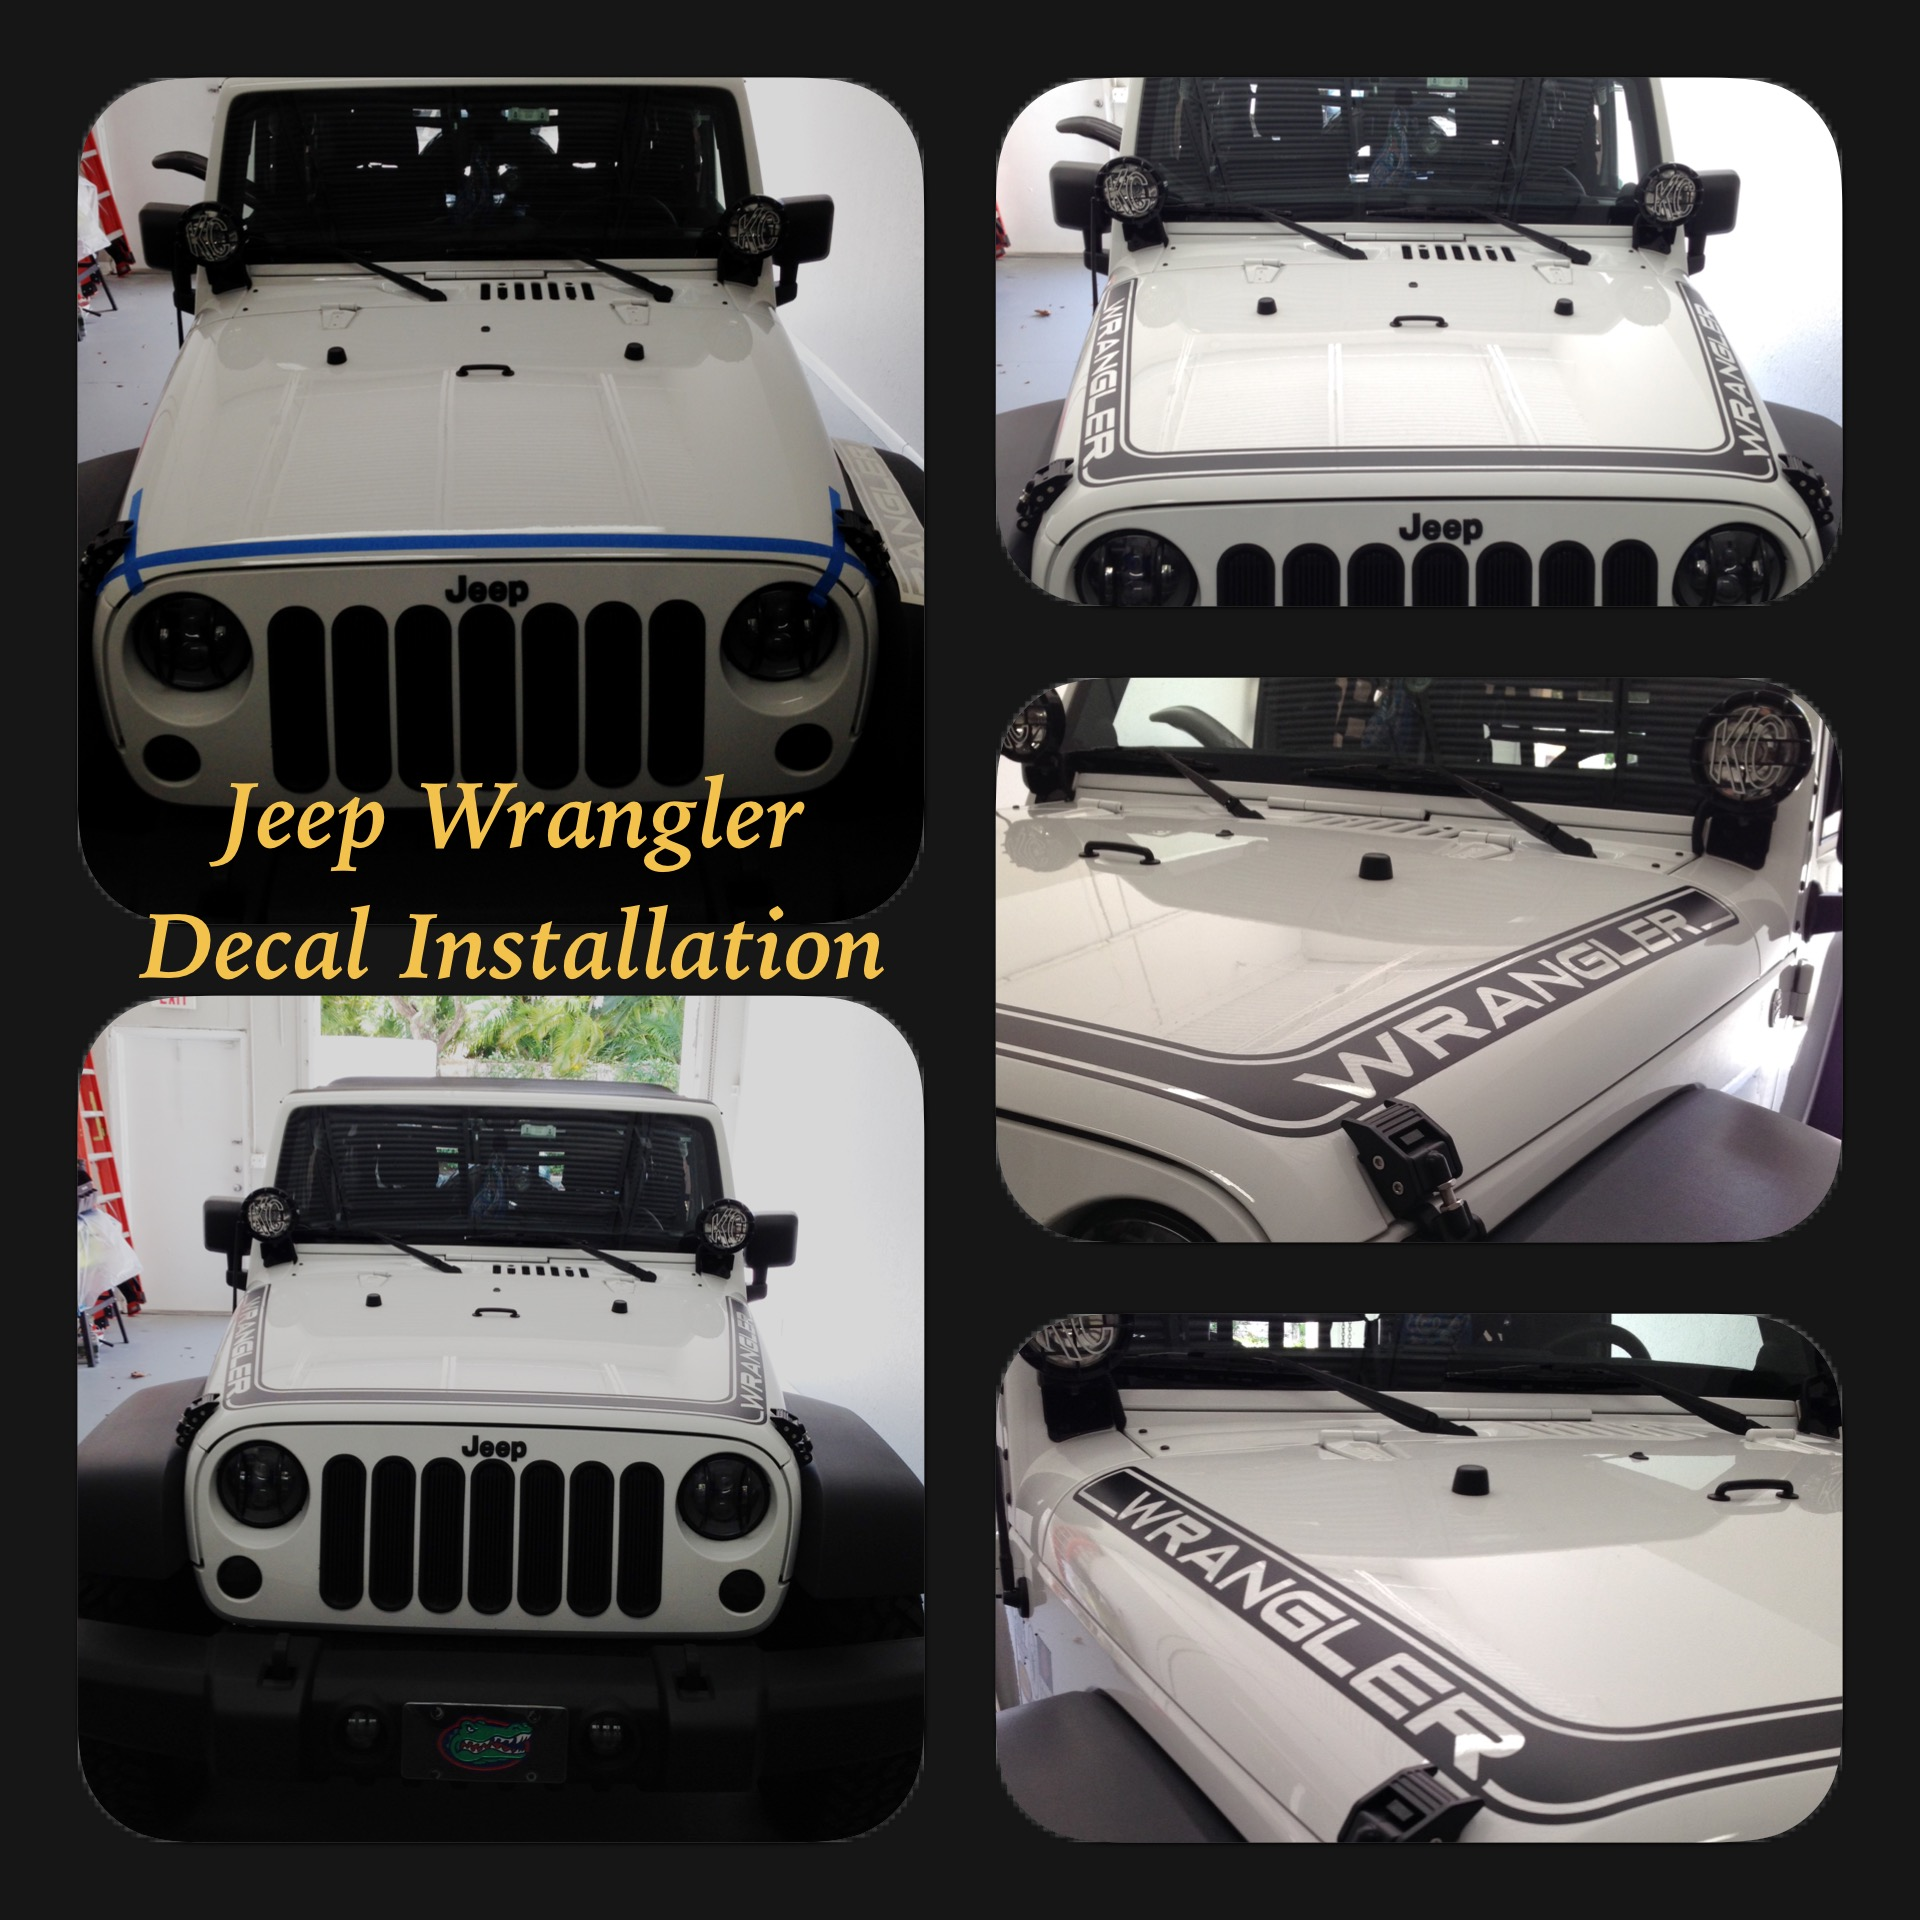 Jeep Wrangler Decal - Tint Magic Window Tint Coral Springs